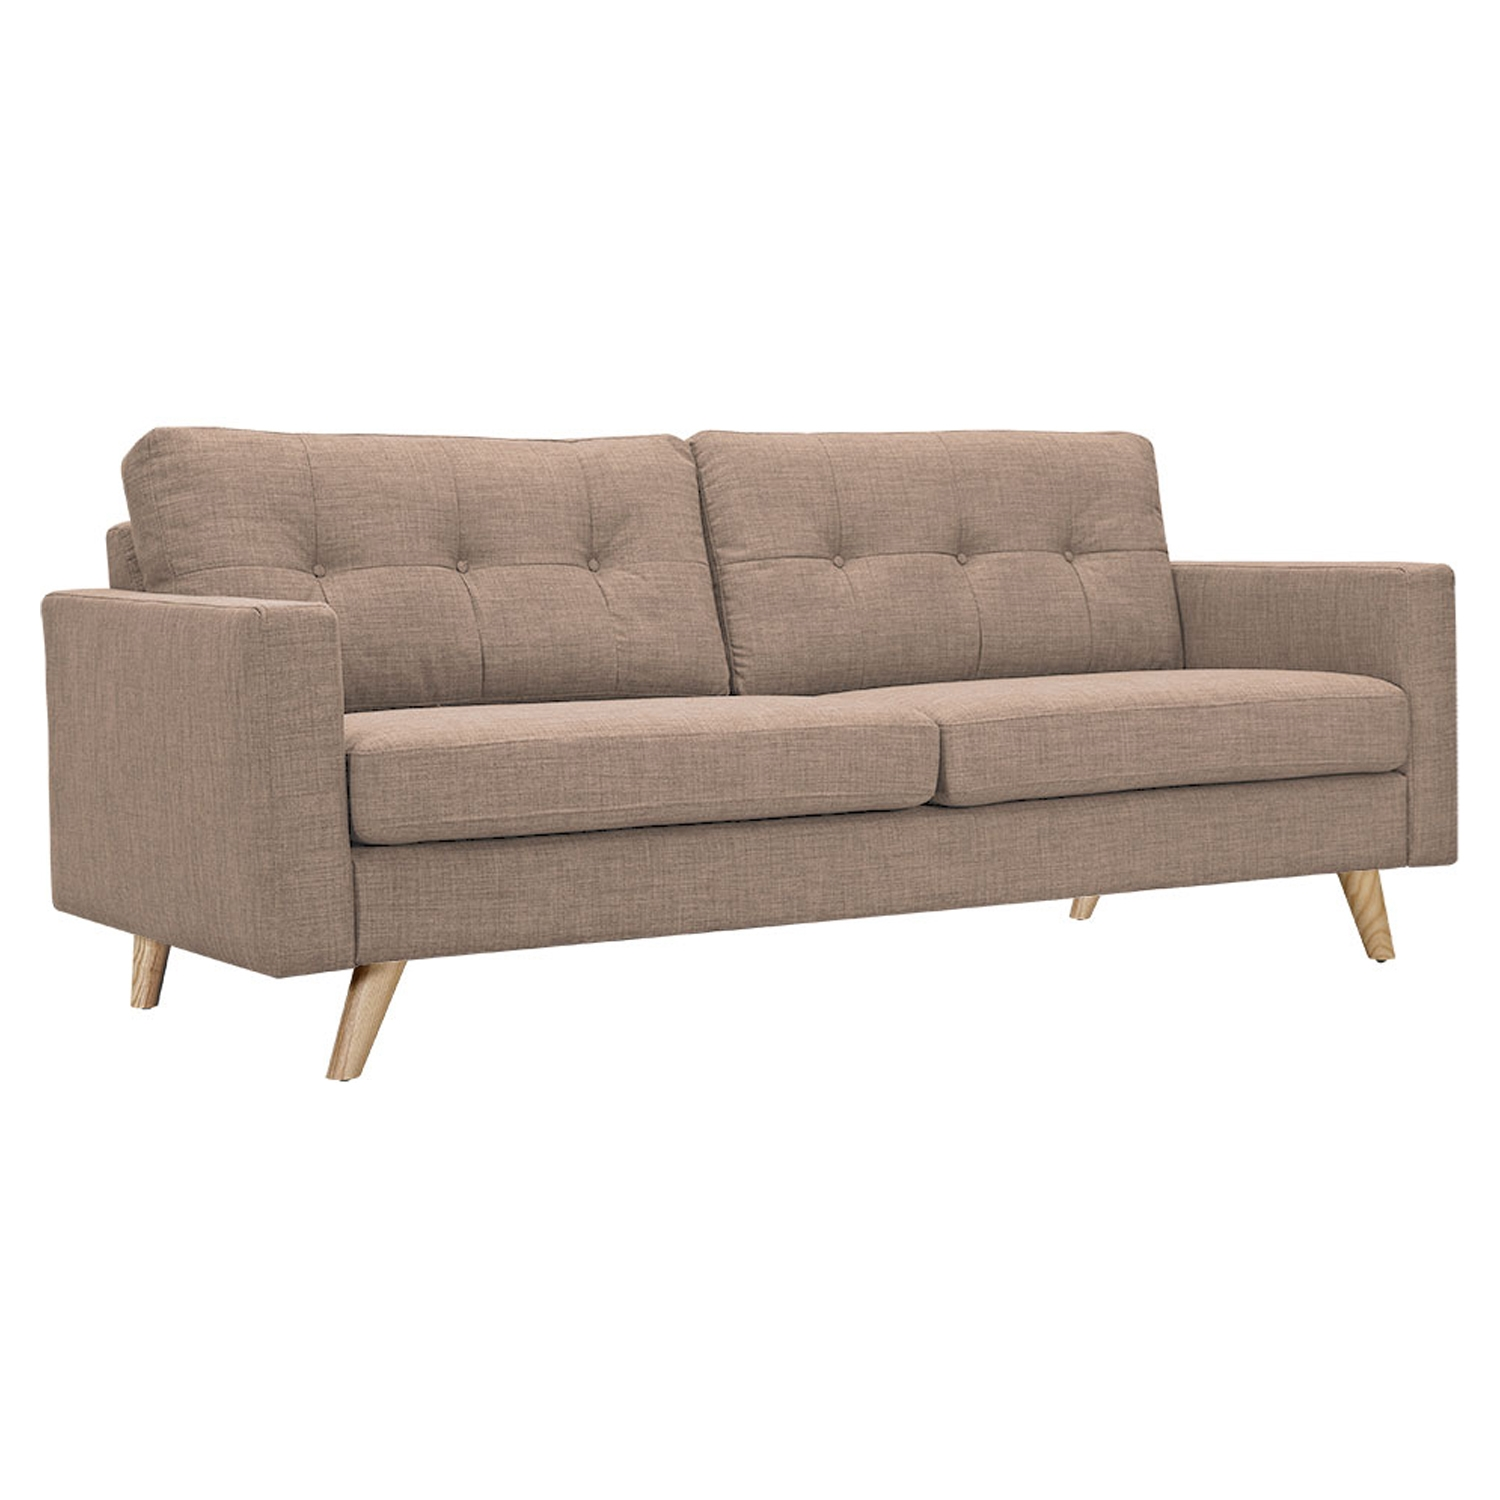 Uma Sofa - Light Sand, Button Tufted